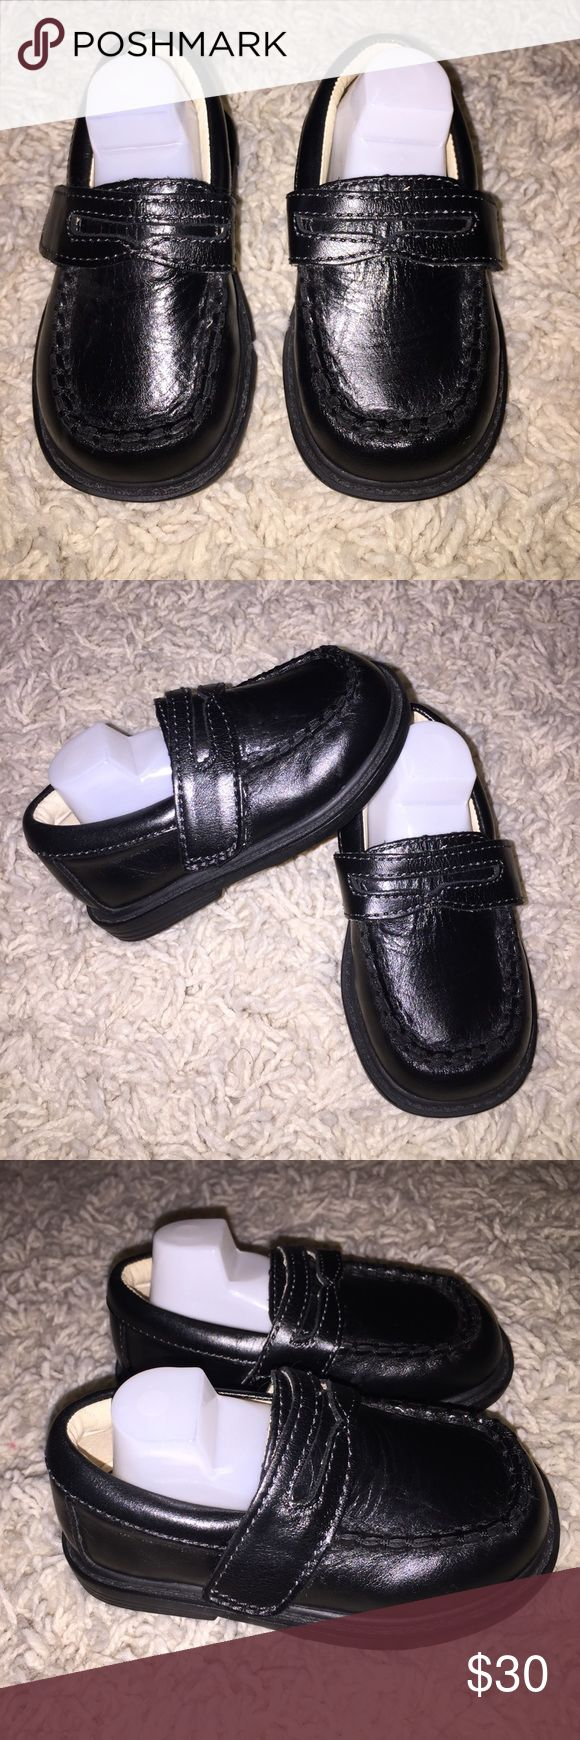 Adorable Pediped Black Loafers Adjustable Closure Adorable Pediped Black Loafers Velcro Adjustable Closure Euro size 20 US size 5. Perfect for the upcoming Holiday's! Genuine leather upper Breathable leather lining Flexible rubber sole Adjustable Velcro® closure Approved by the American Podiatric Medical Association for promoting healthy foot development pediped Shoes Dress Shoes